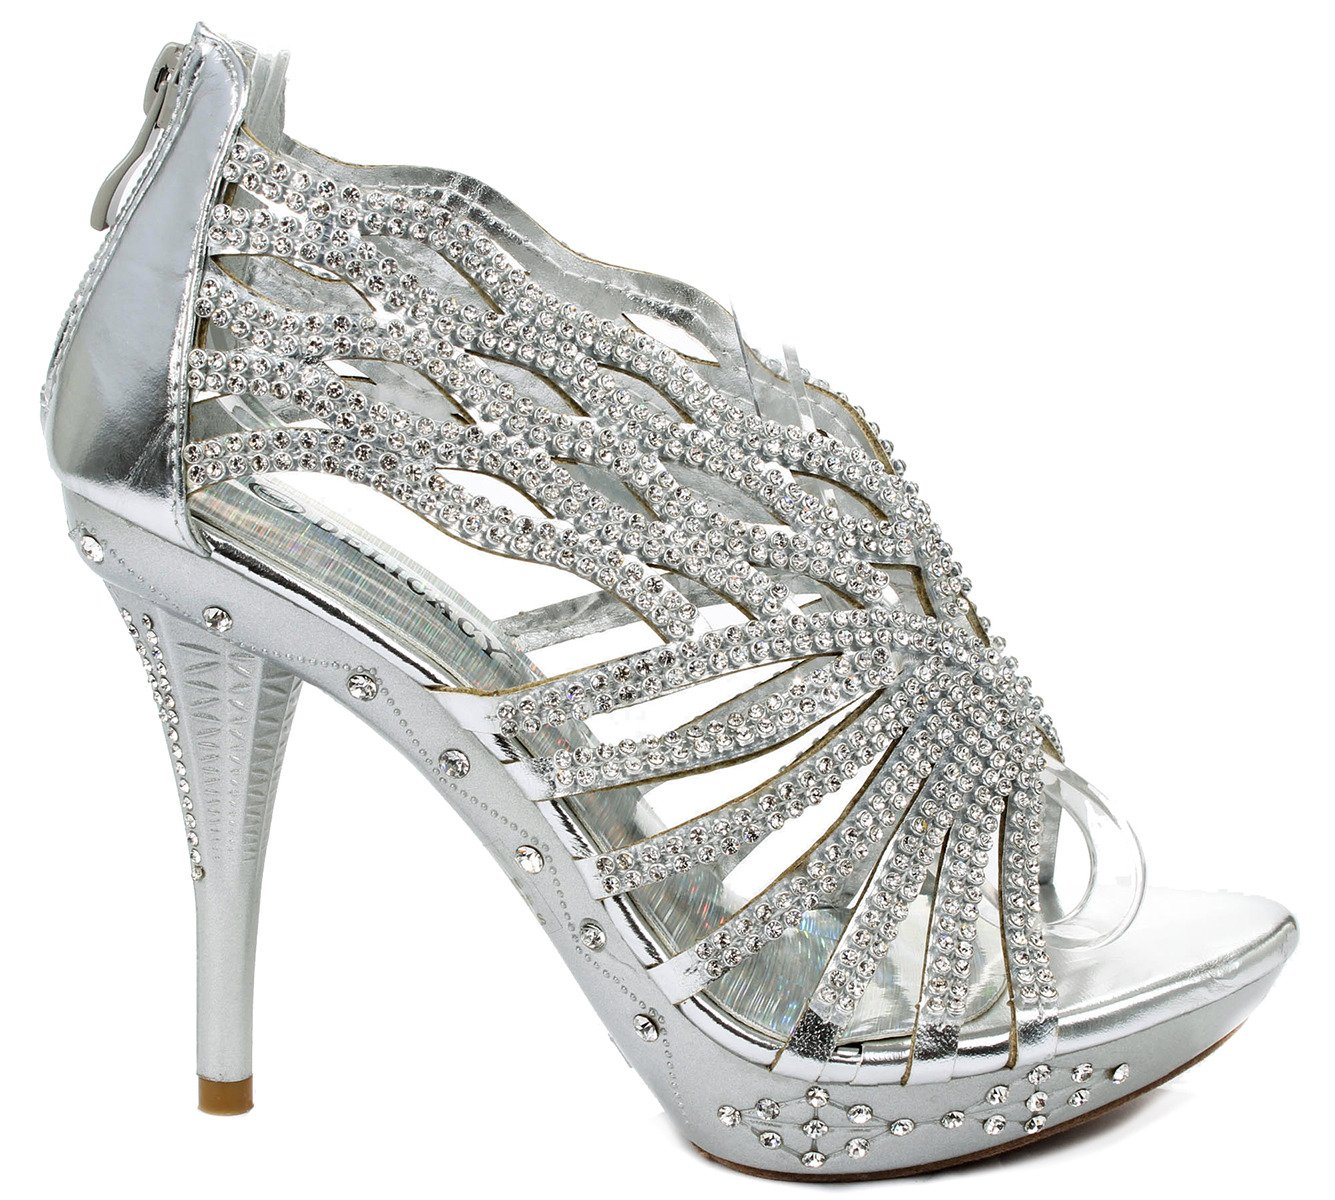 Delicacy Decent76 Dazzling Rhinestone Wave Cut Out Strappy Evening Dress High Heel Pump Sandals B00W4WXYZU 5.5 B(M) US|Silver